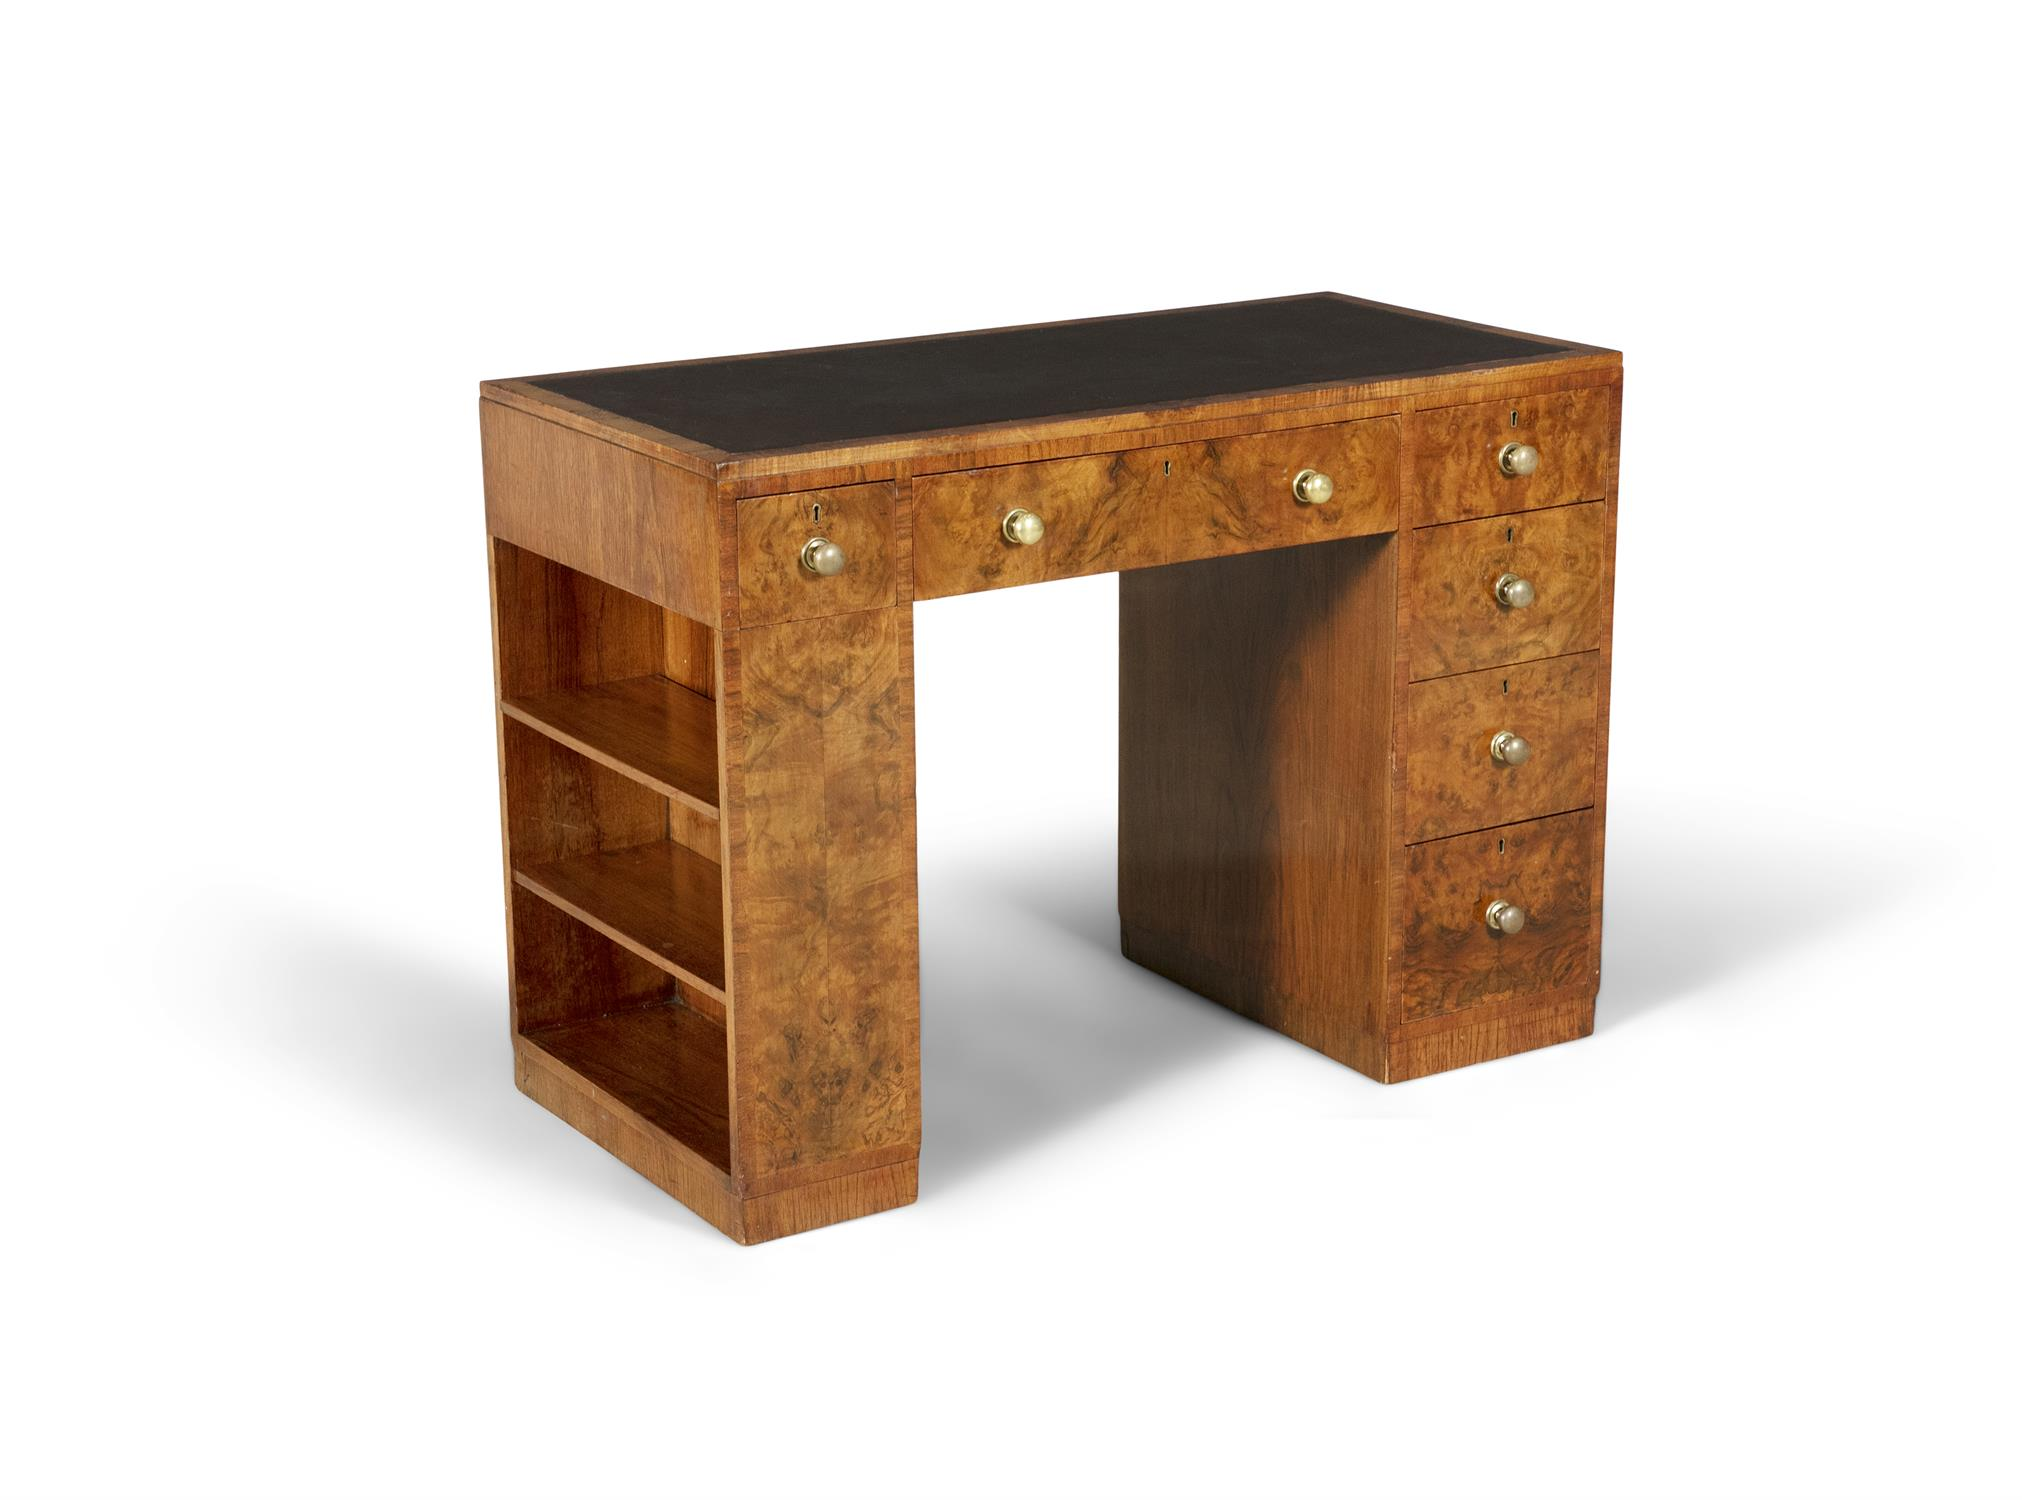 A MID 20TH-CENTURY WALNUT KNEEHOLE WRITING DESK, the rectangular top inset with brown leather - Image 2 of 3